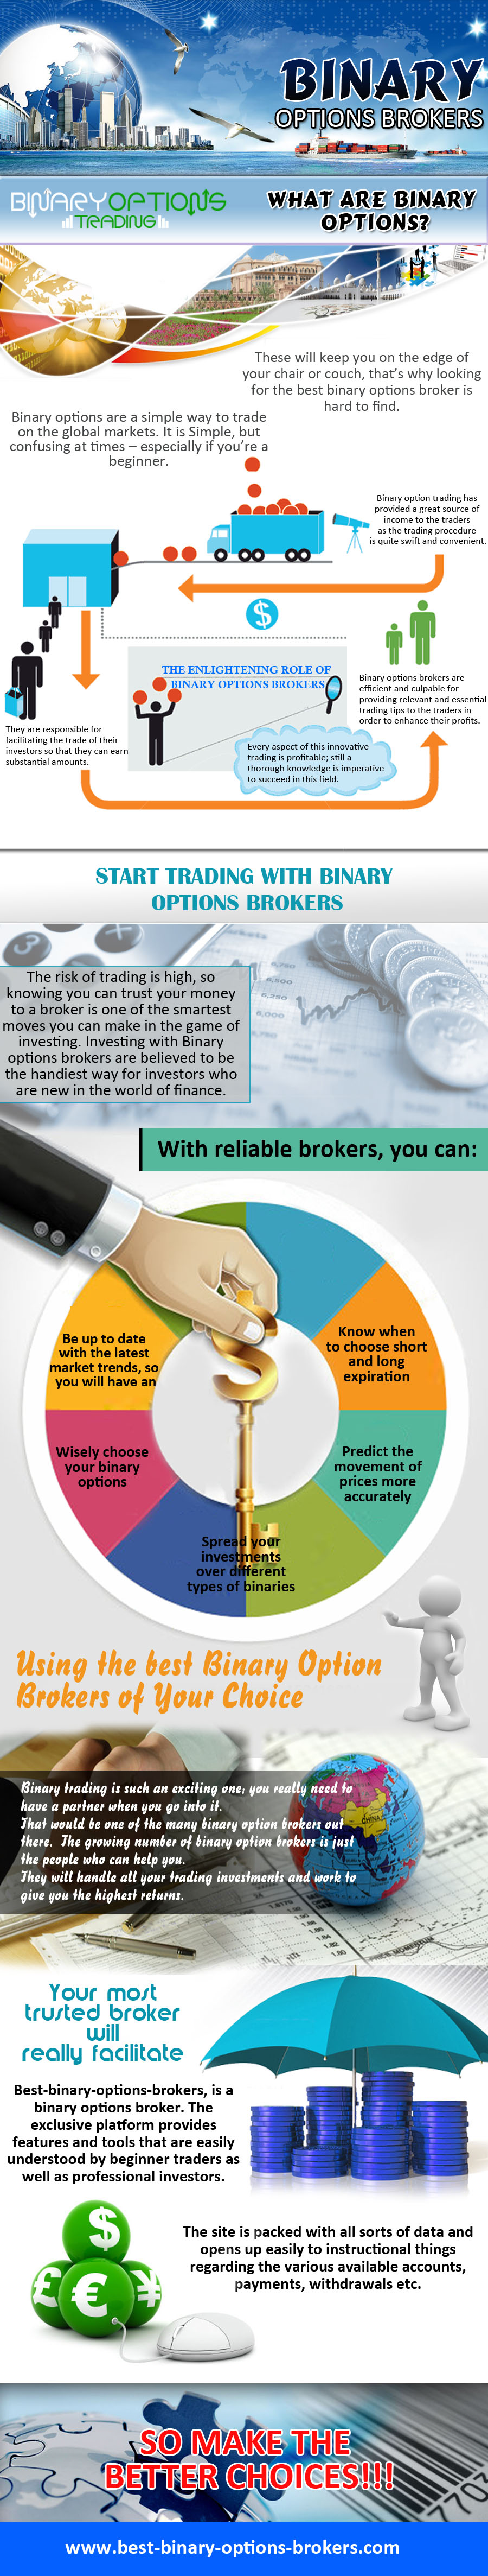 Best Binary Options Brokers - Highest Return and Demo Accounts for new Traders